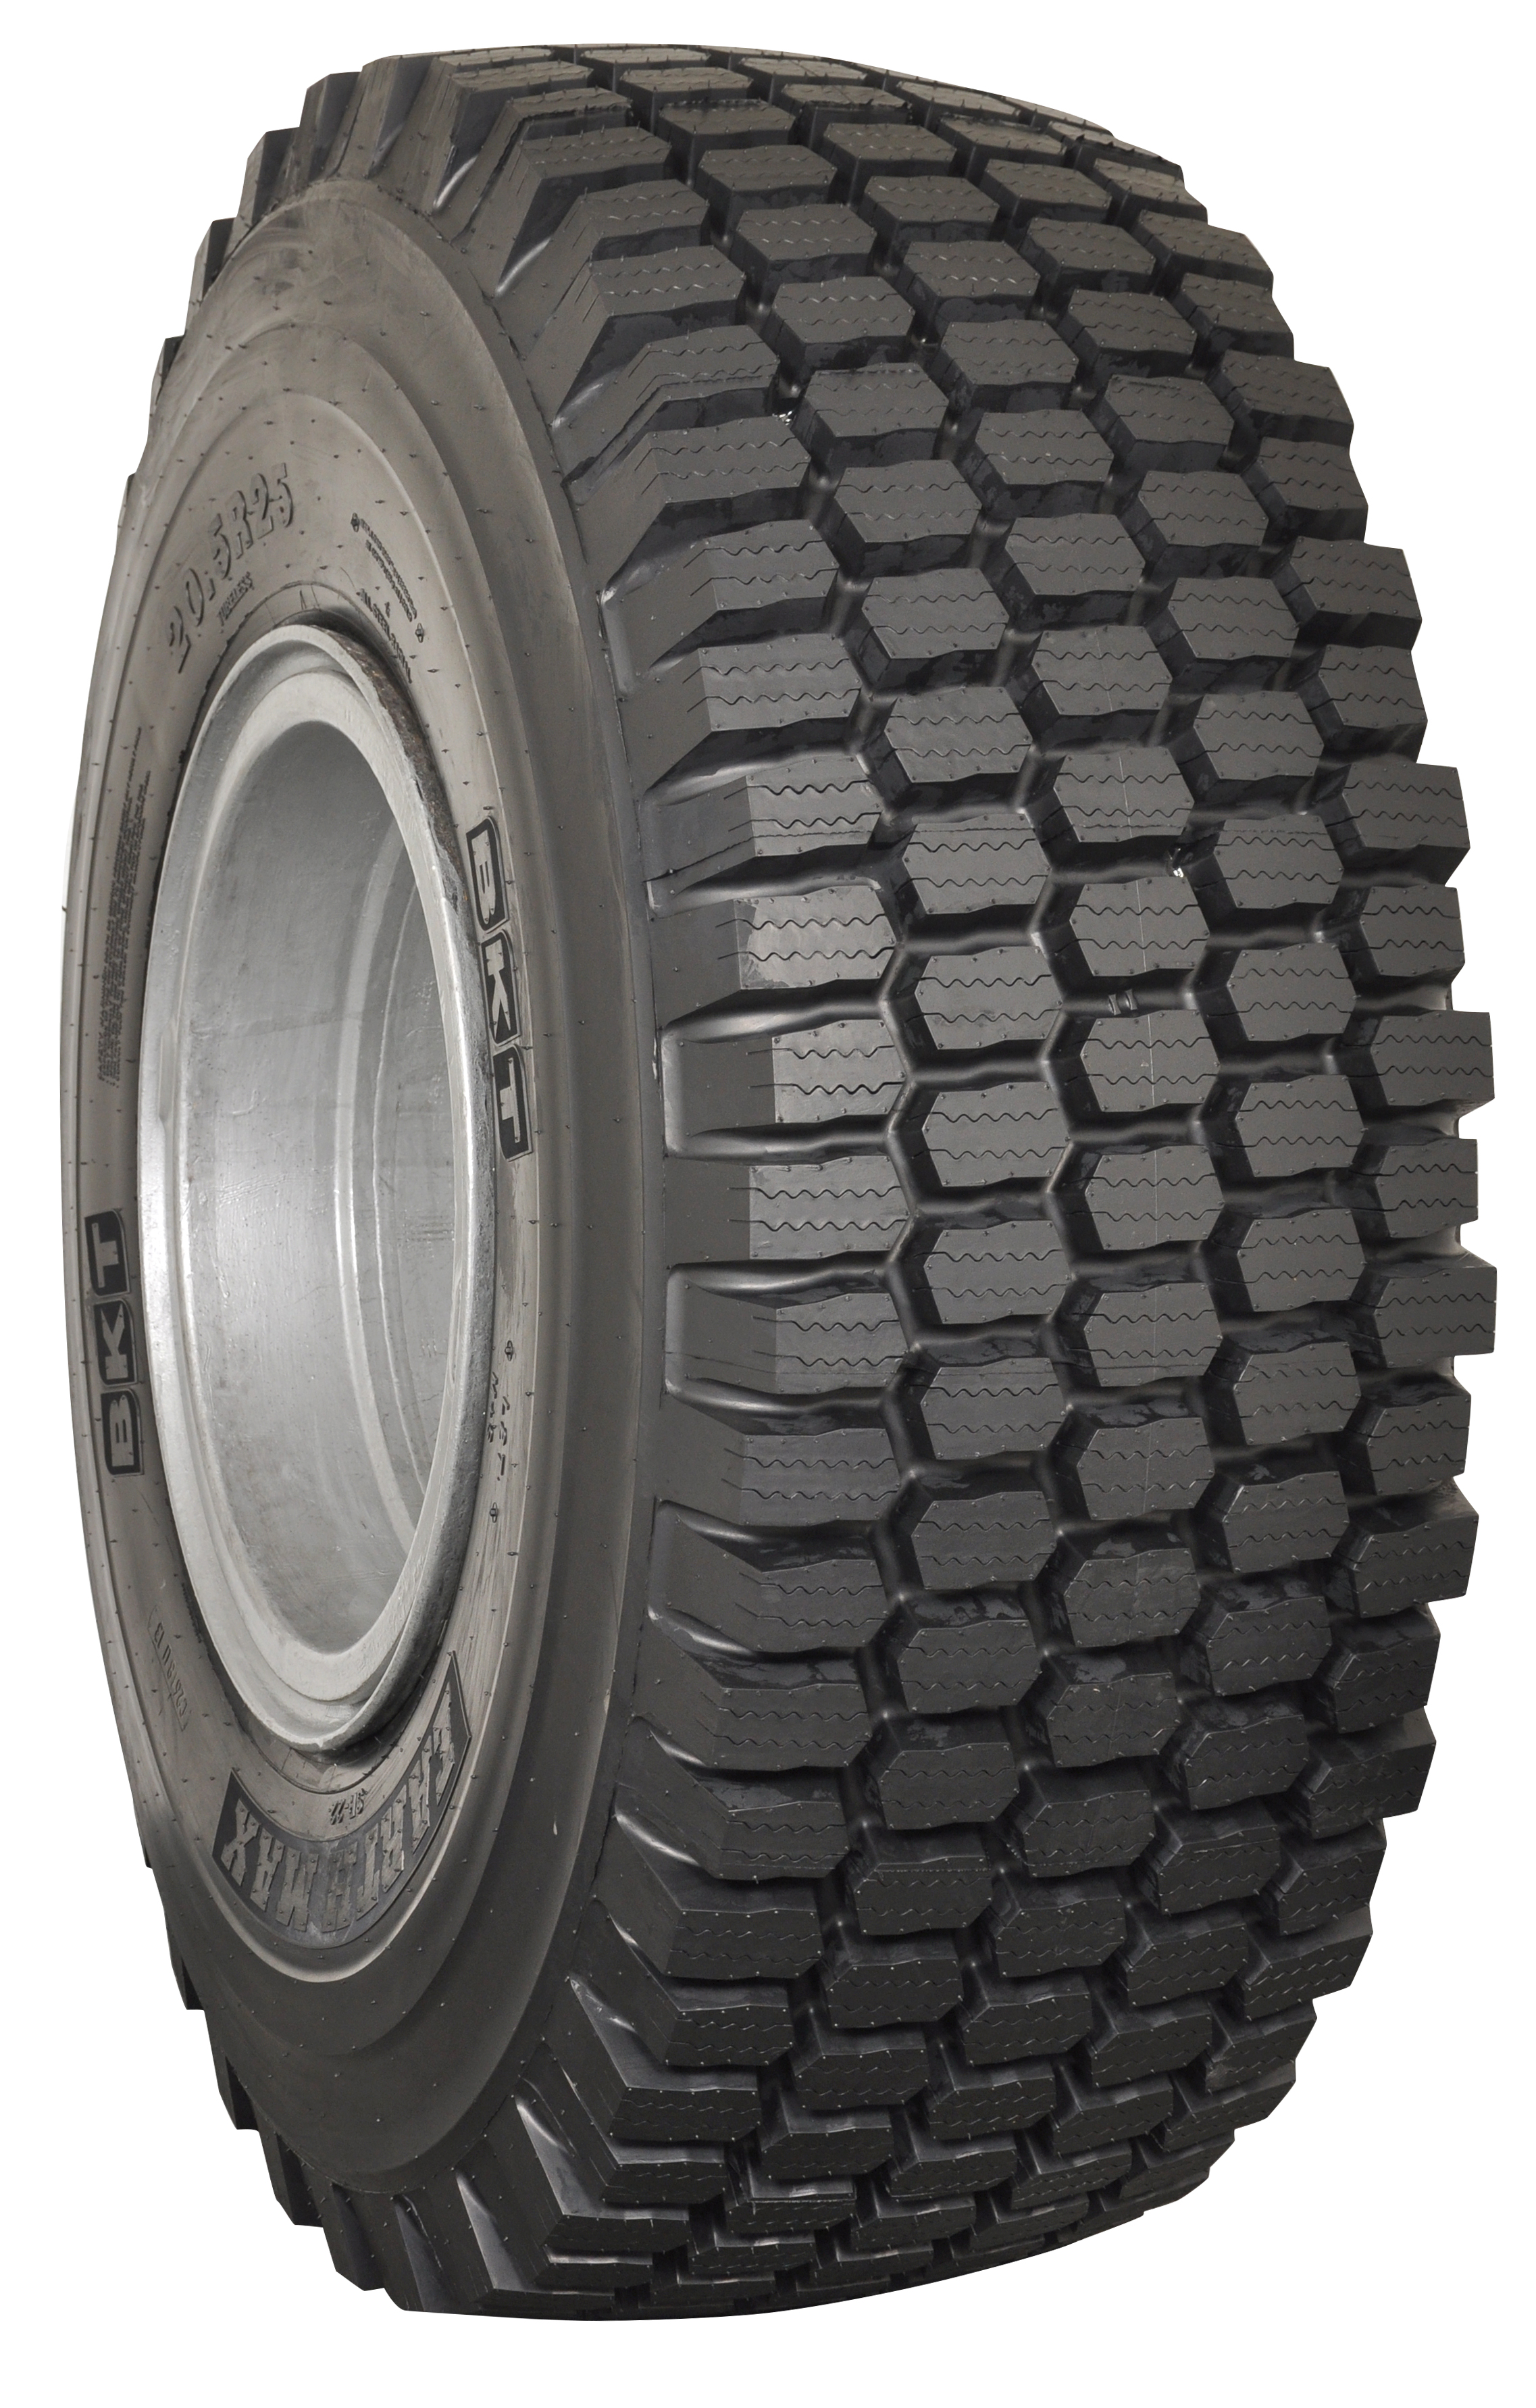 BKT debuts mud and snow OTR tire